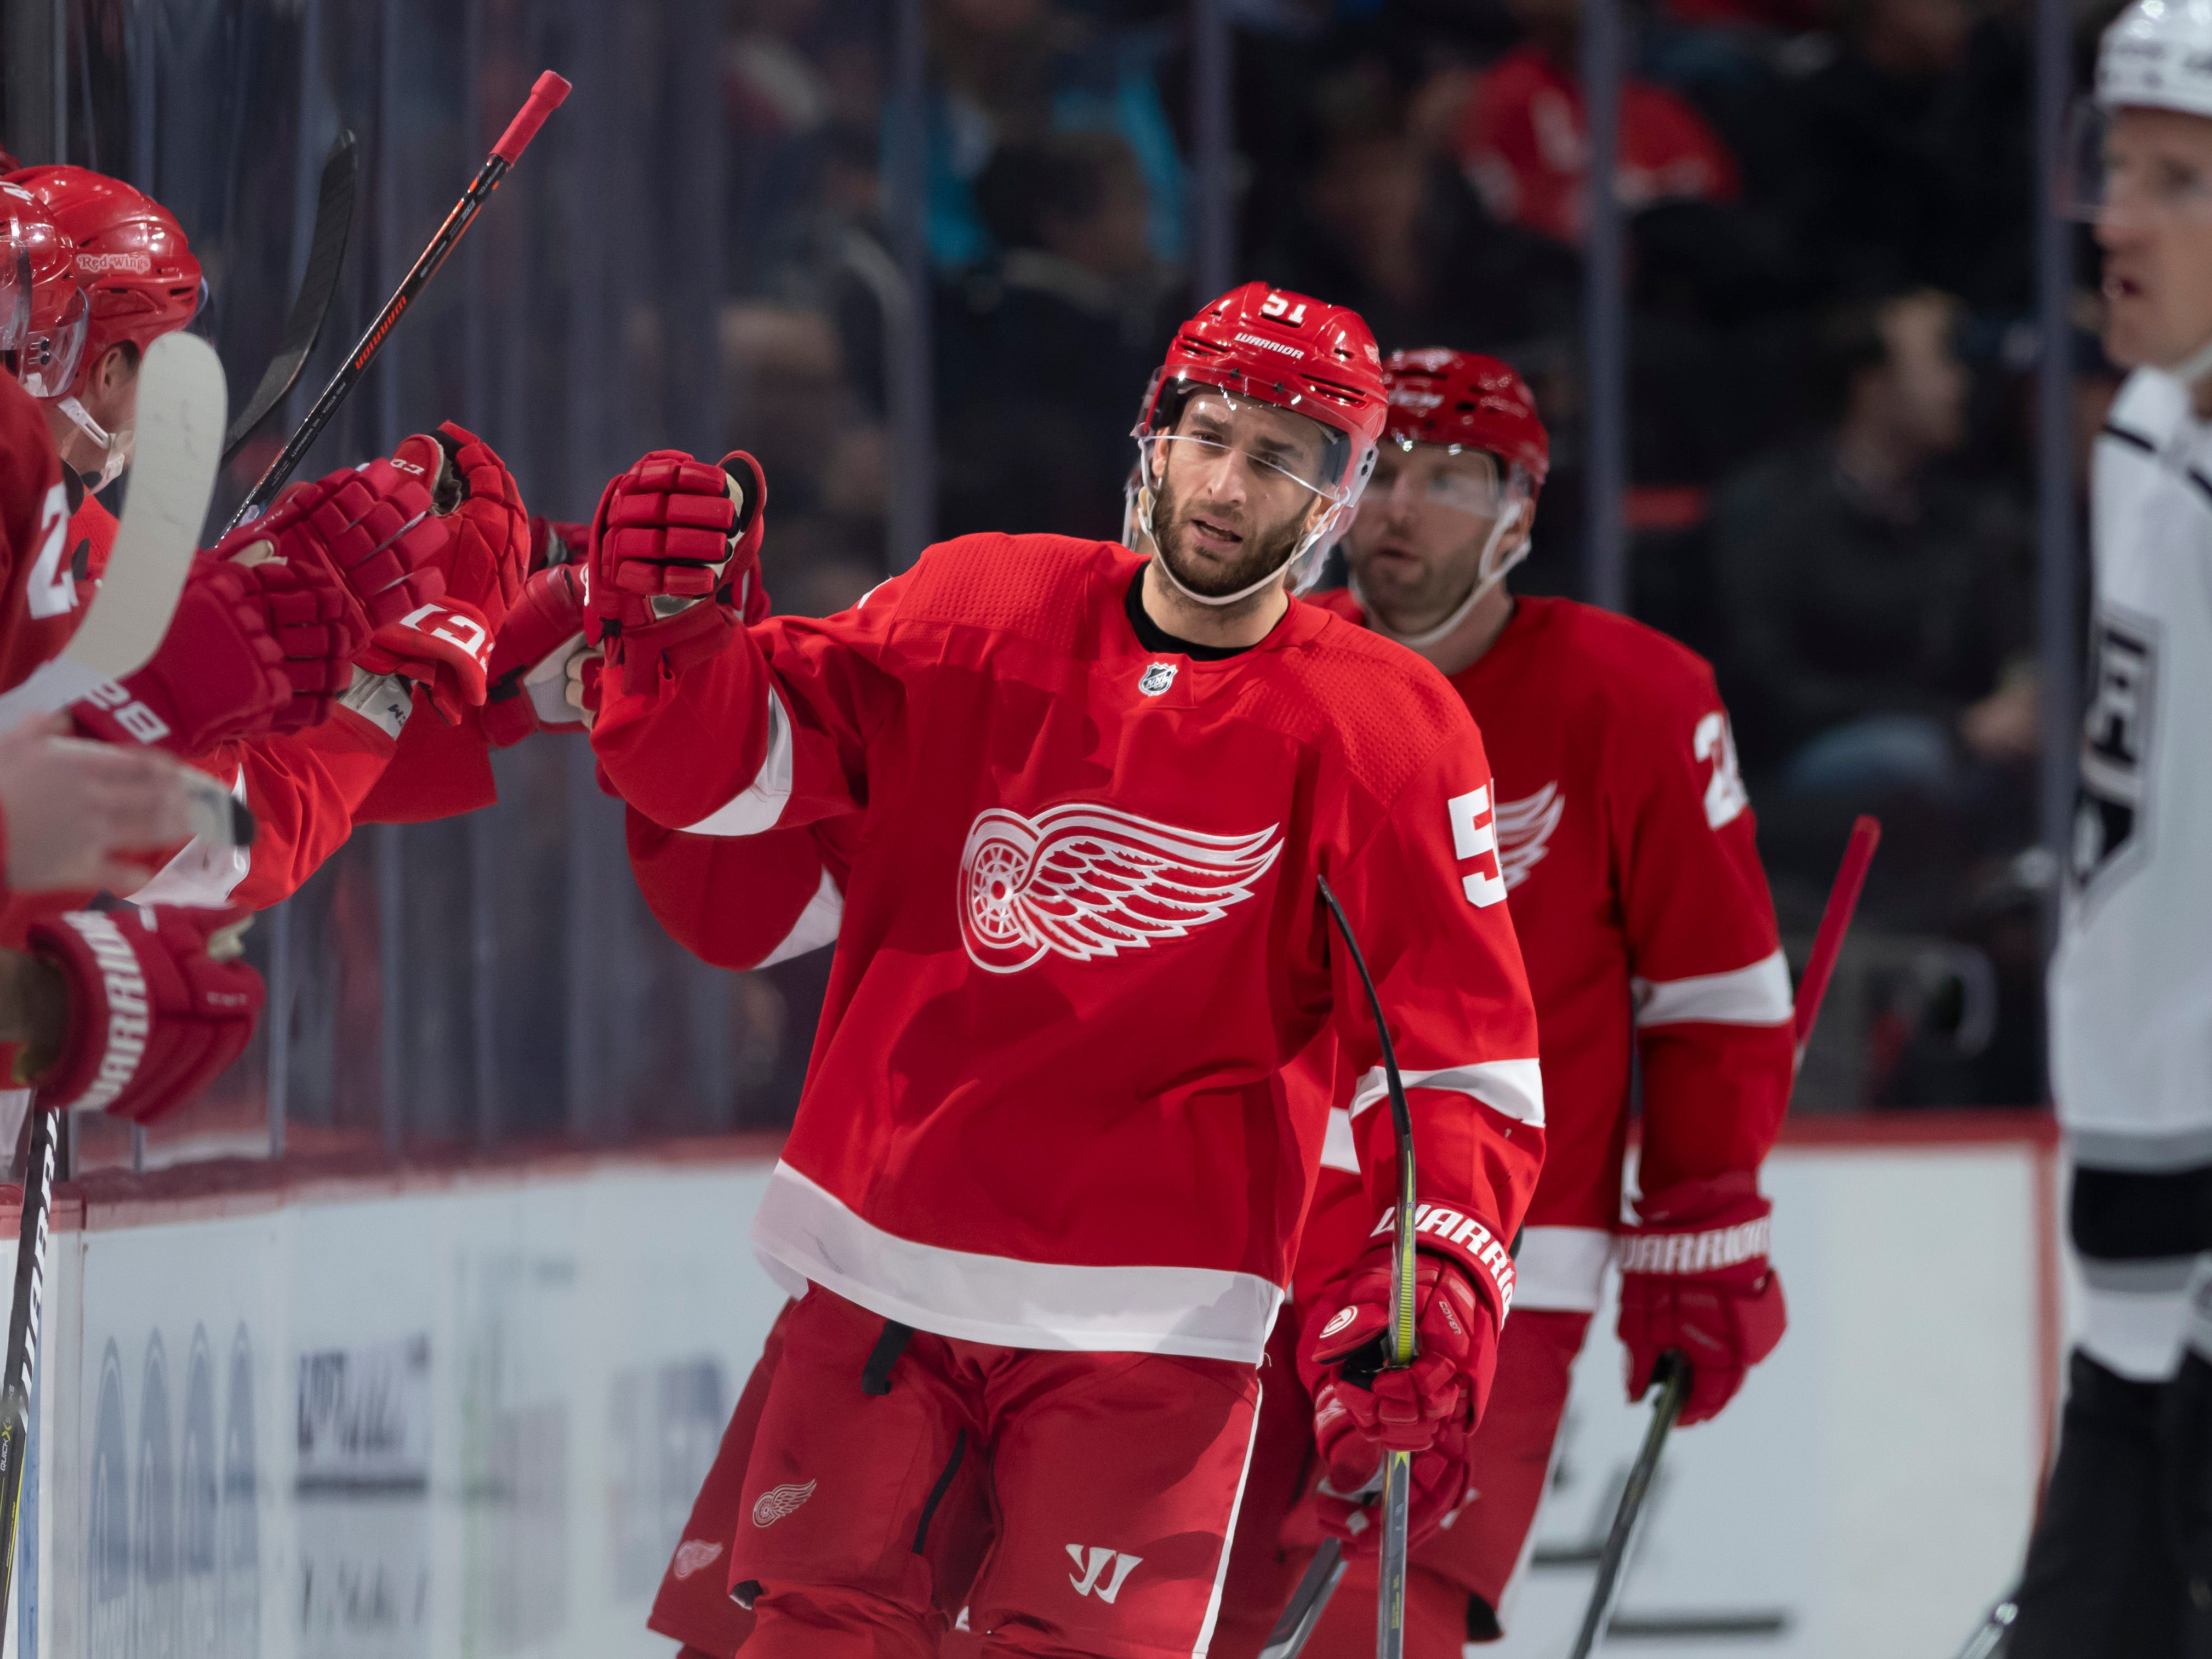 Detroit center Frans Nielsen gets high-fives from his teammates after scoring in the second period.